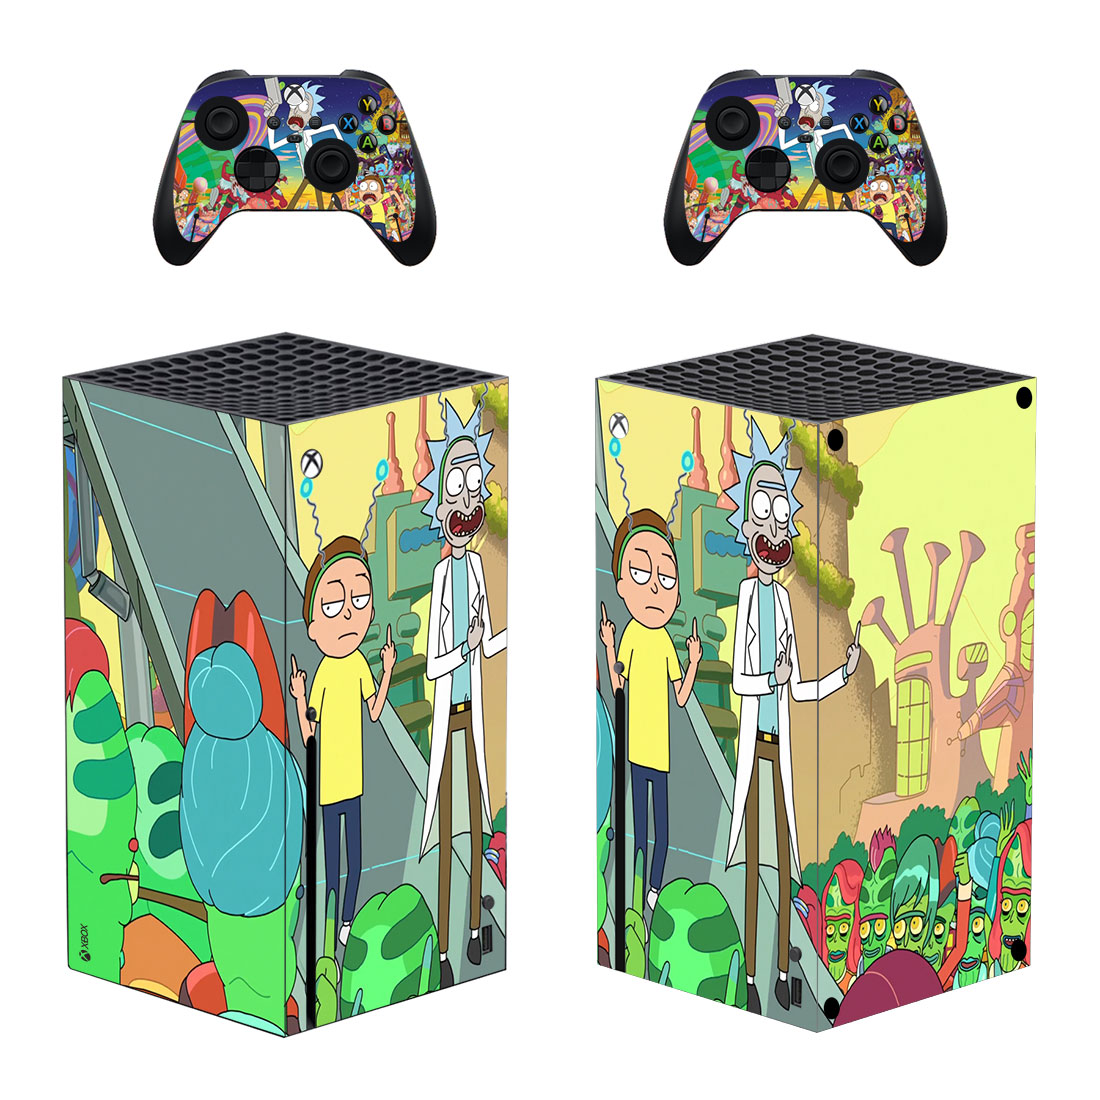 Rick And Morty Skin Sticker For Xbox Series X And Controllers